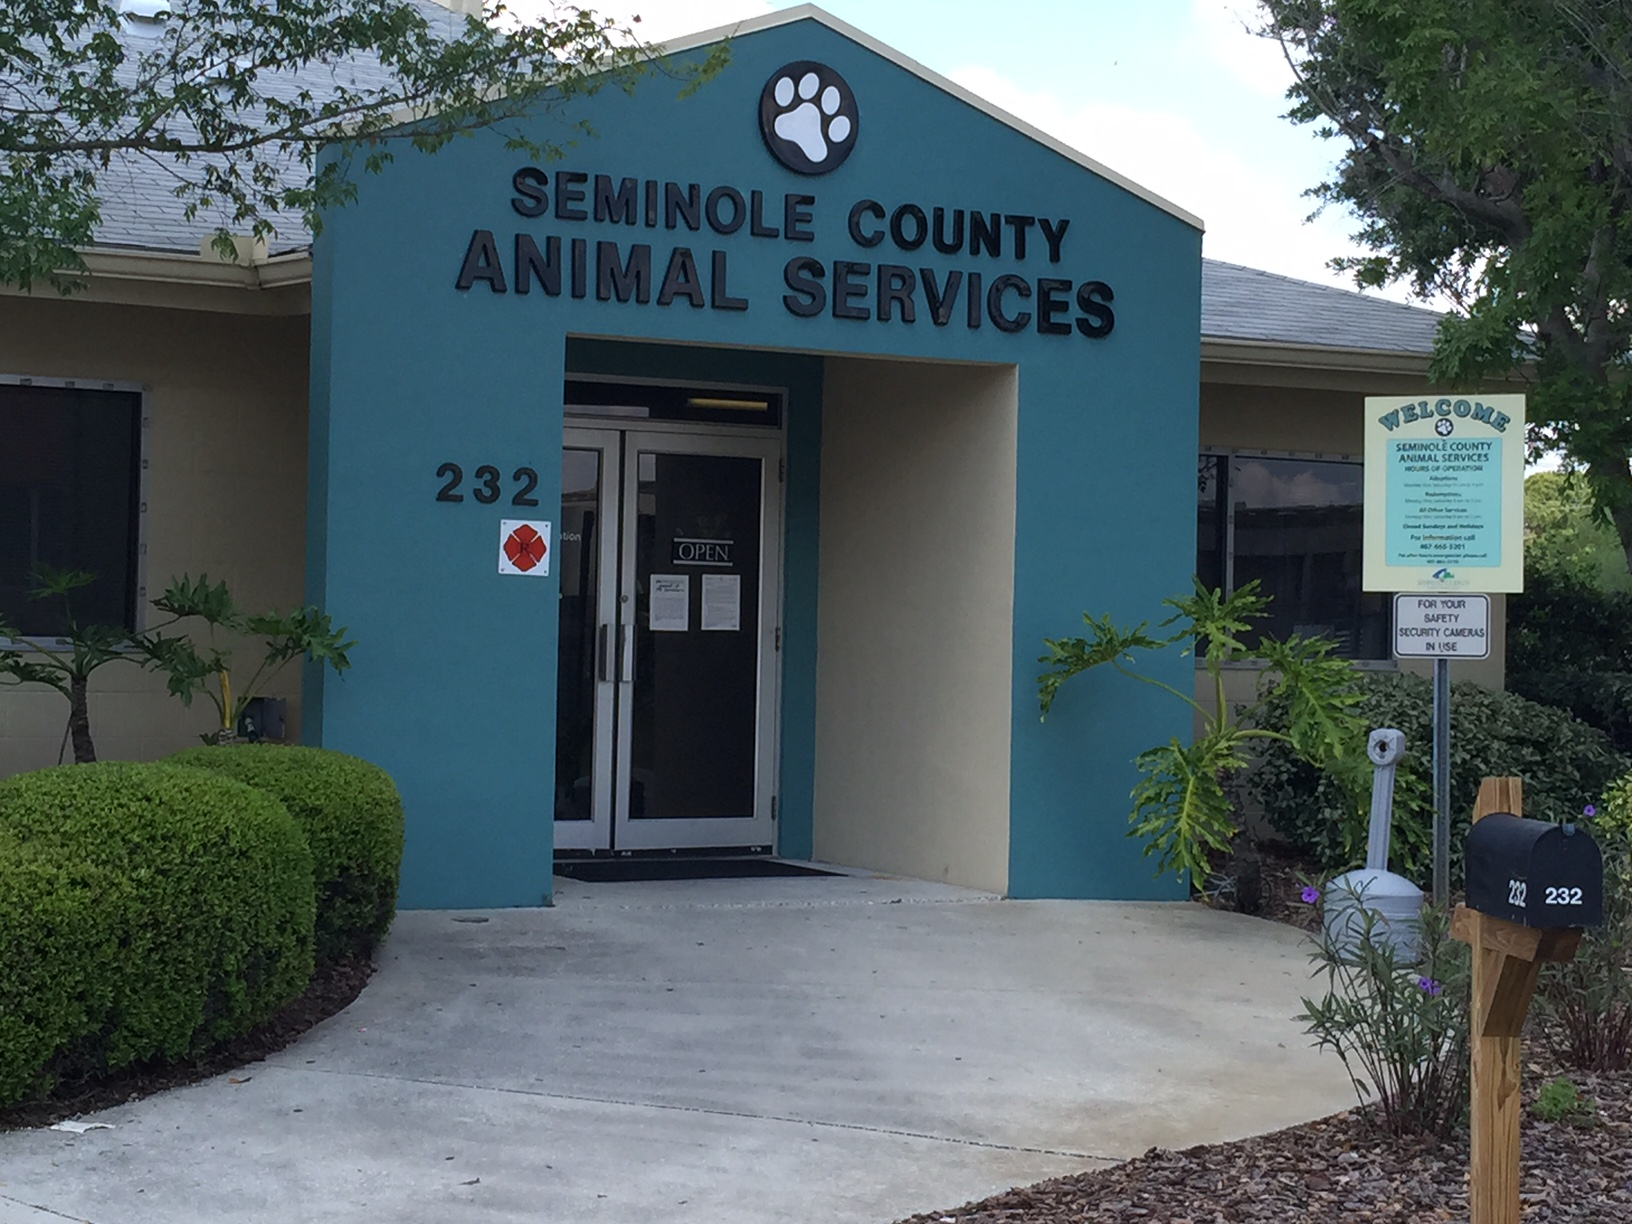 Seminole County Animal Services (SCAS